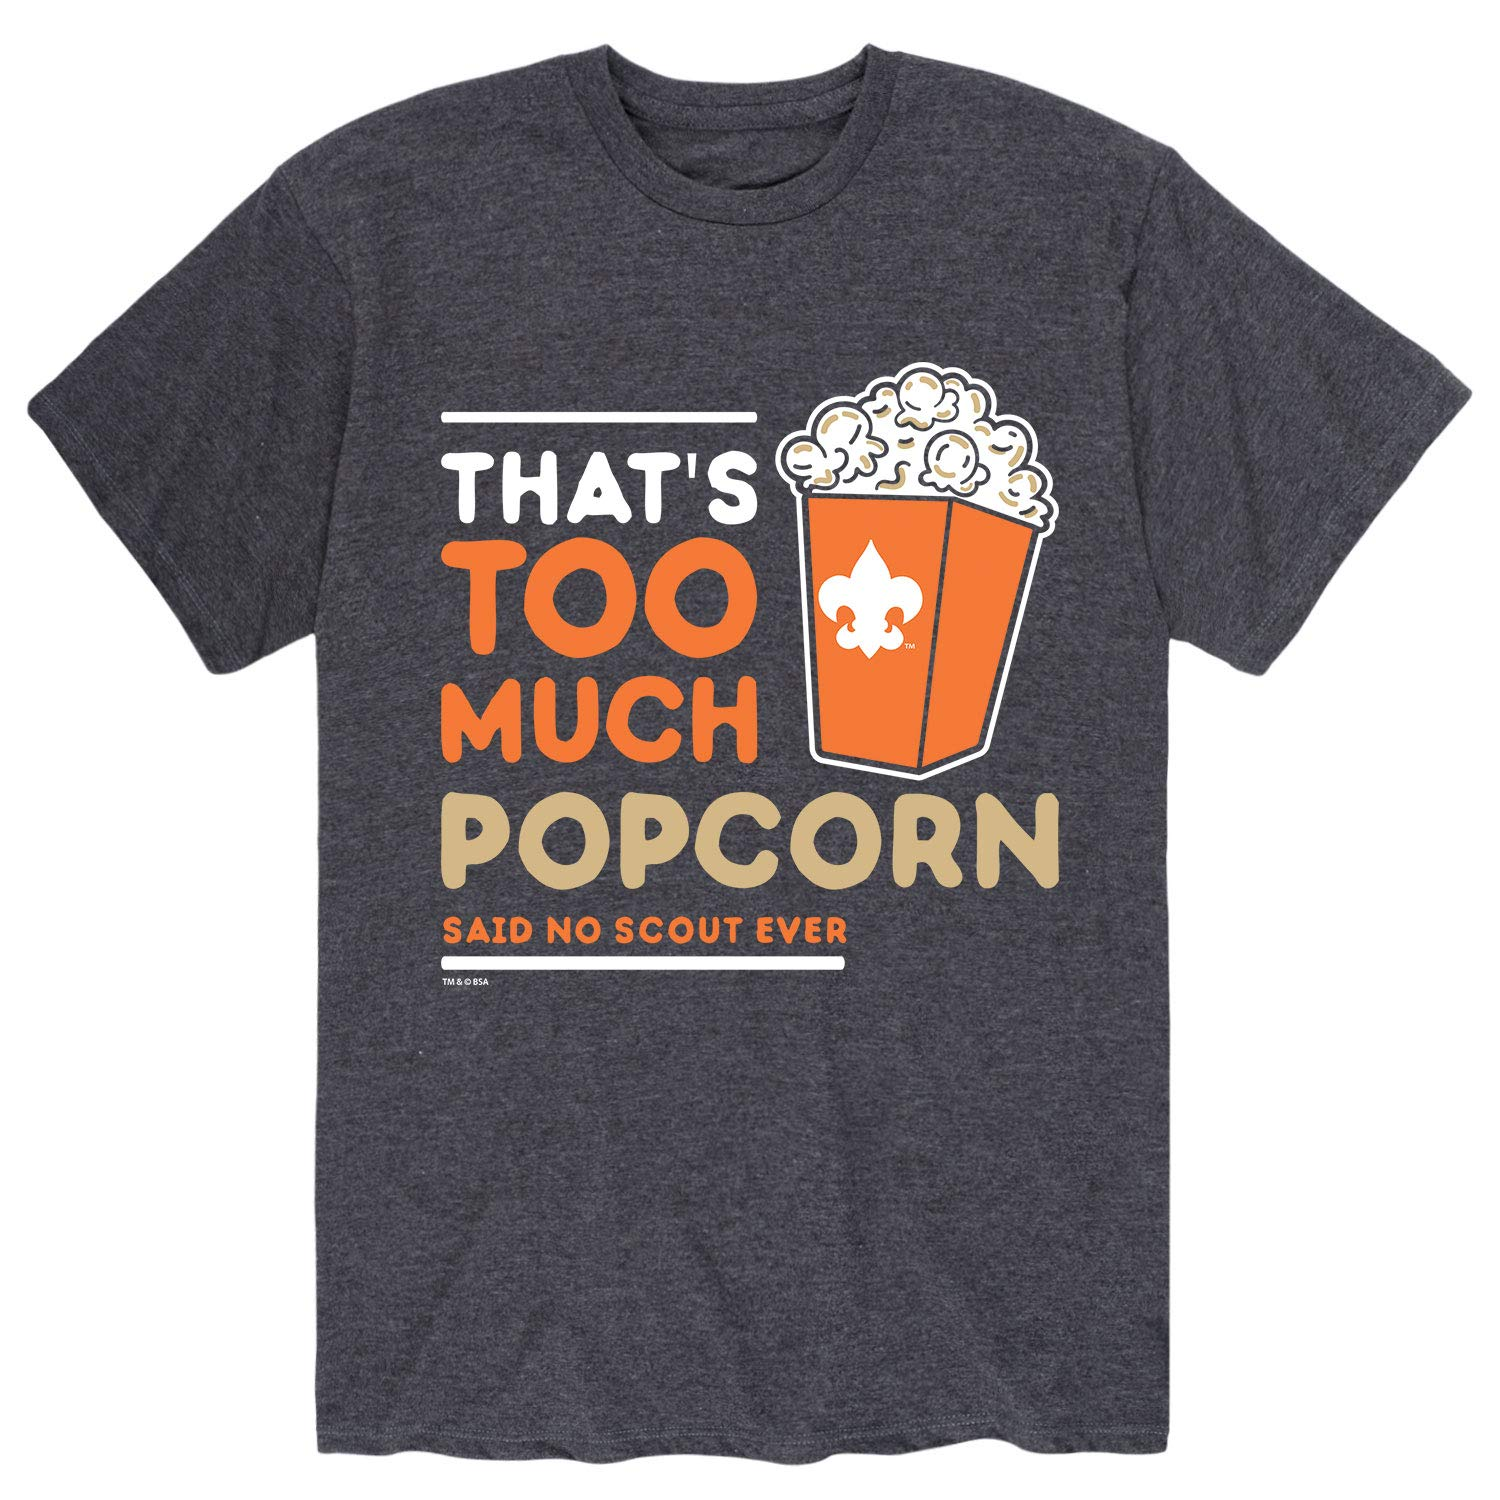 Boy Scouts of America Thats Too Much Popcorn - Adult Short Sleeve Tee Heather Charcoal by Instant Message